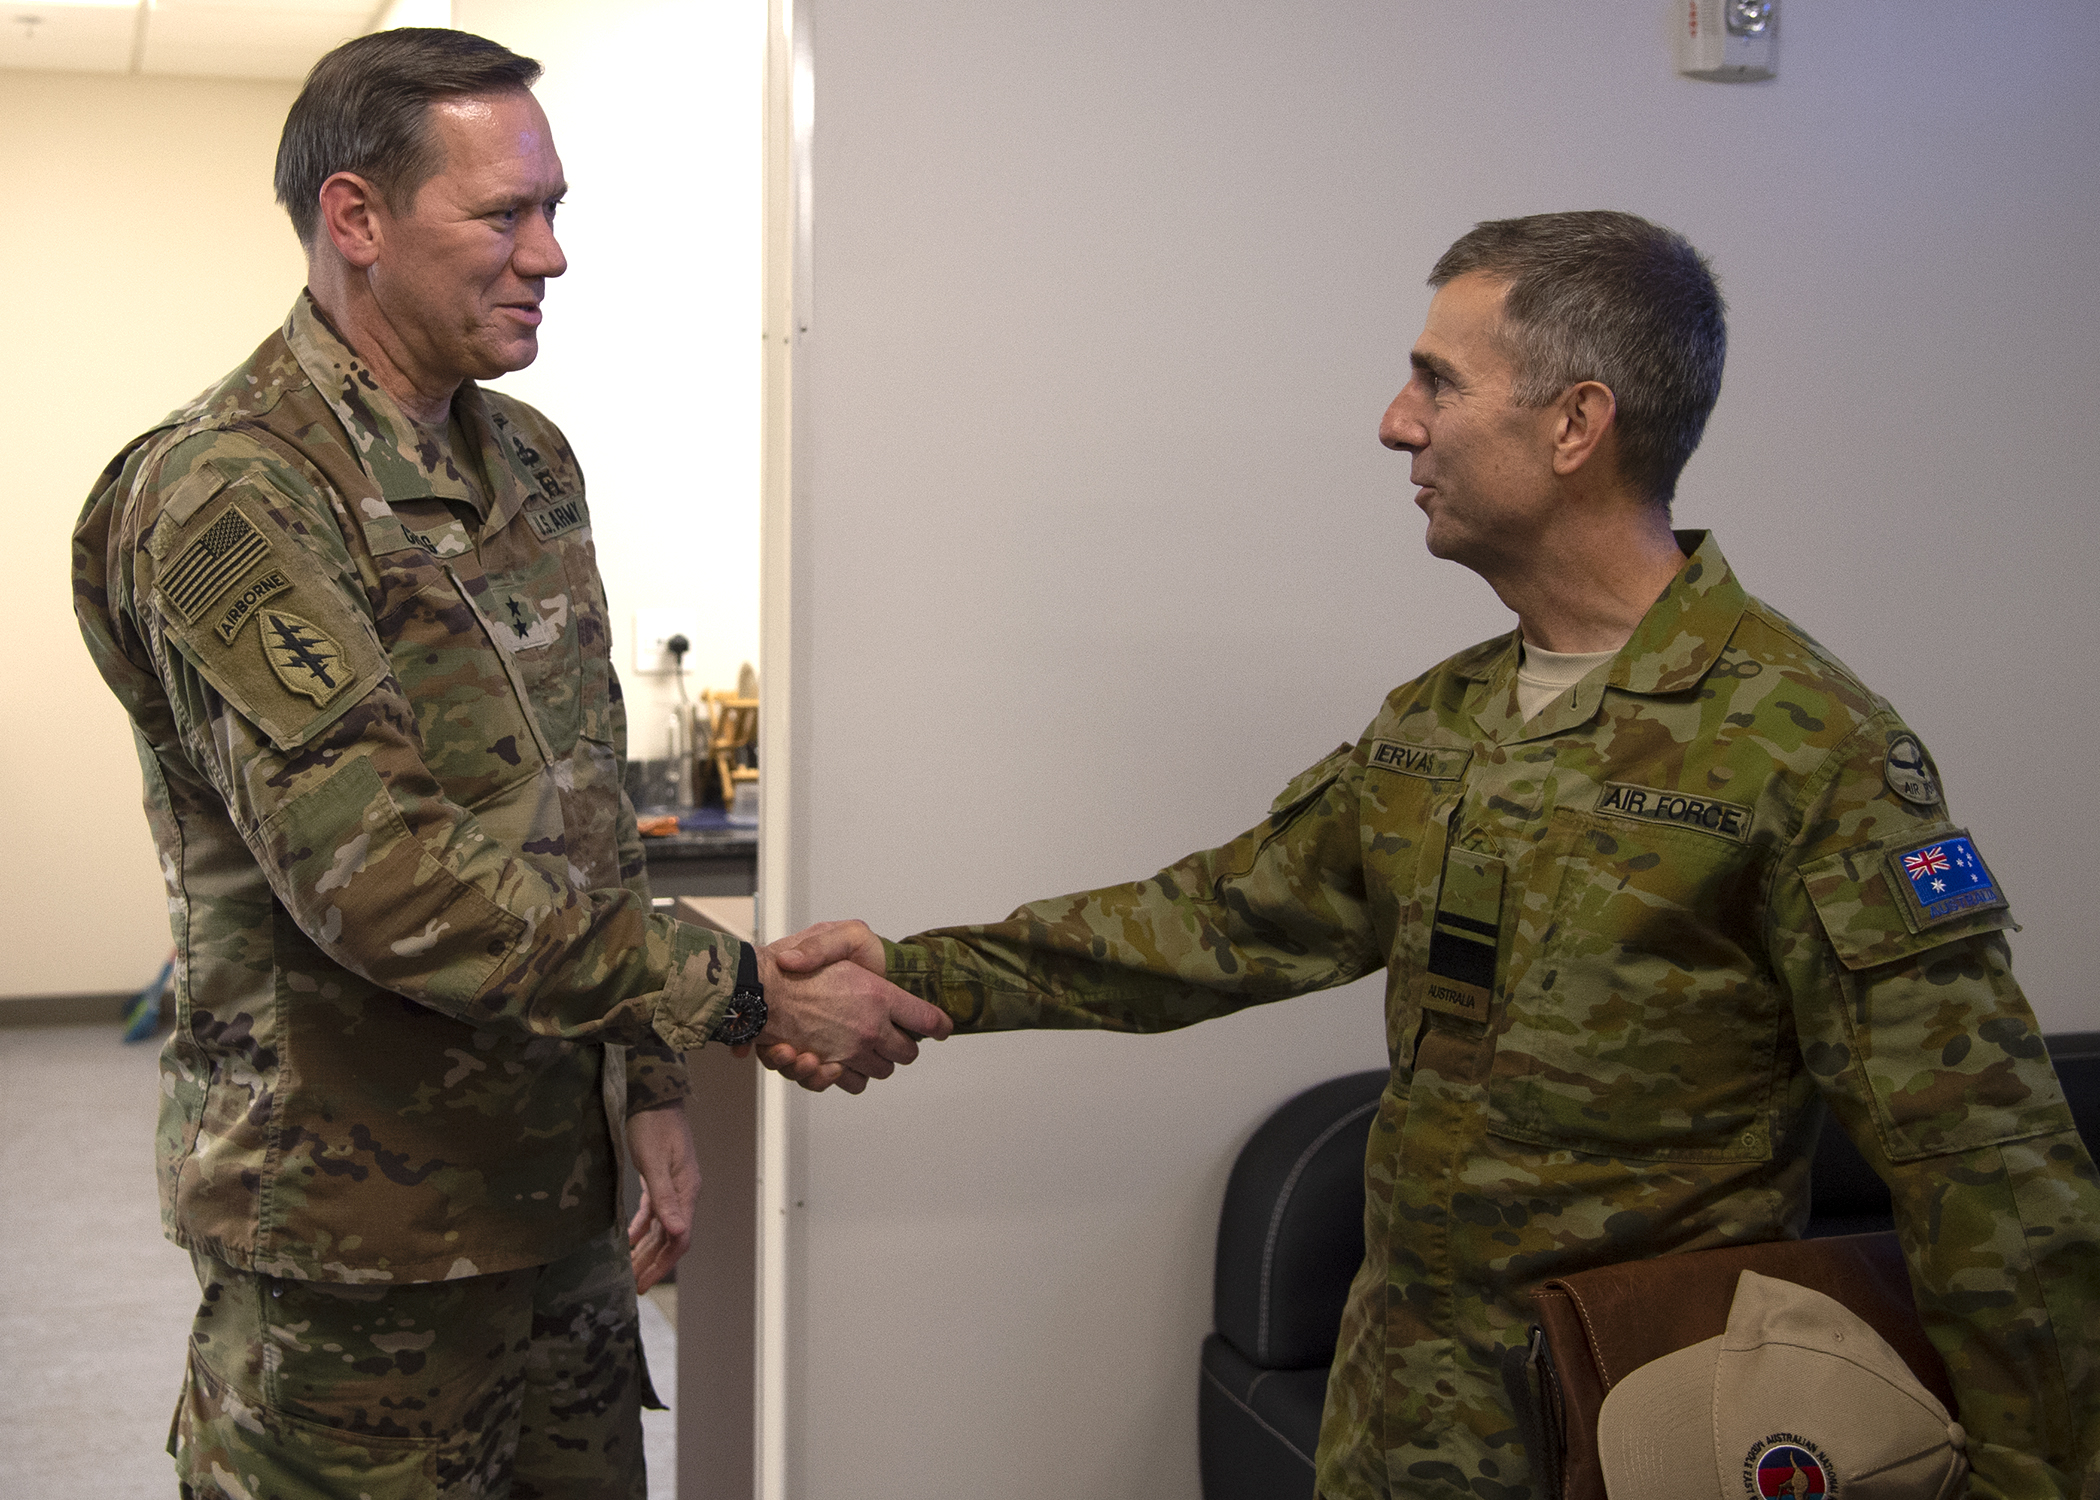 U.S. Army Maj. Gen. James D. Craig, left, commanding general, Combined Joint Task Force-Horn of Africa (CJTF-HOA), shakes hands with Royal Australian air force Air Vice-Marshal Vincent Iervasi as he arrives at Combined Joint Task Force-Horn of Africa (CJTF-HOA), Camp Lemonnier, Djibouti, May 7, 2019. Iervasi visited CJTF-HOA to discuss the continued partnership in Africa between Australia and the United States. (U.S. Navy photo by Mass Communication Specialist 1st Class Nick Scott)